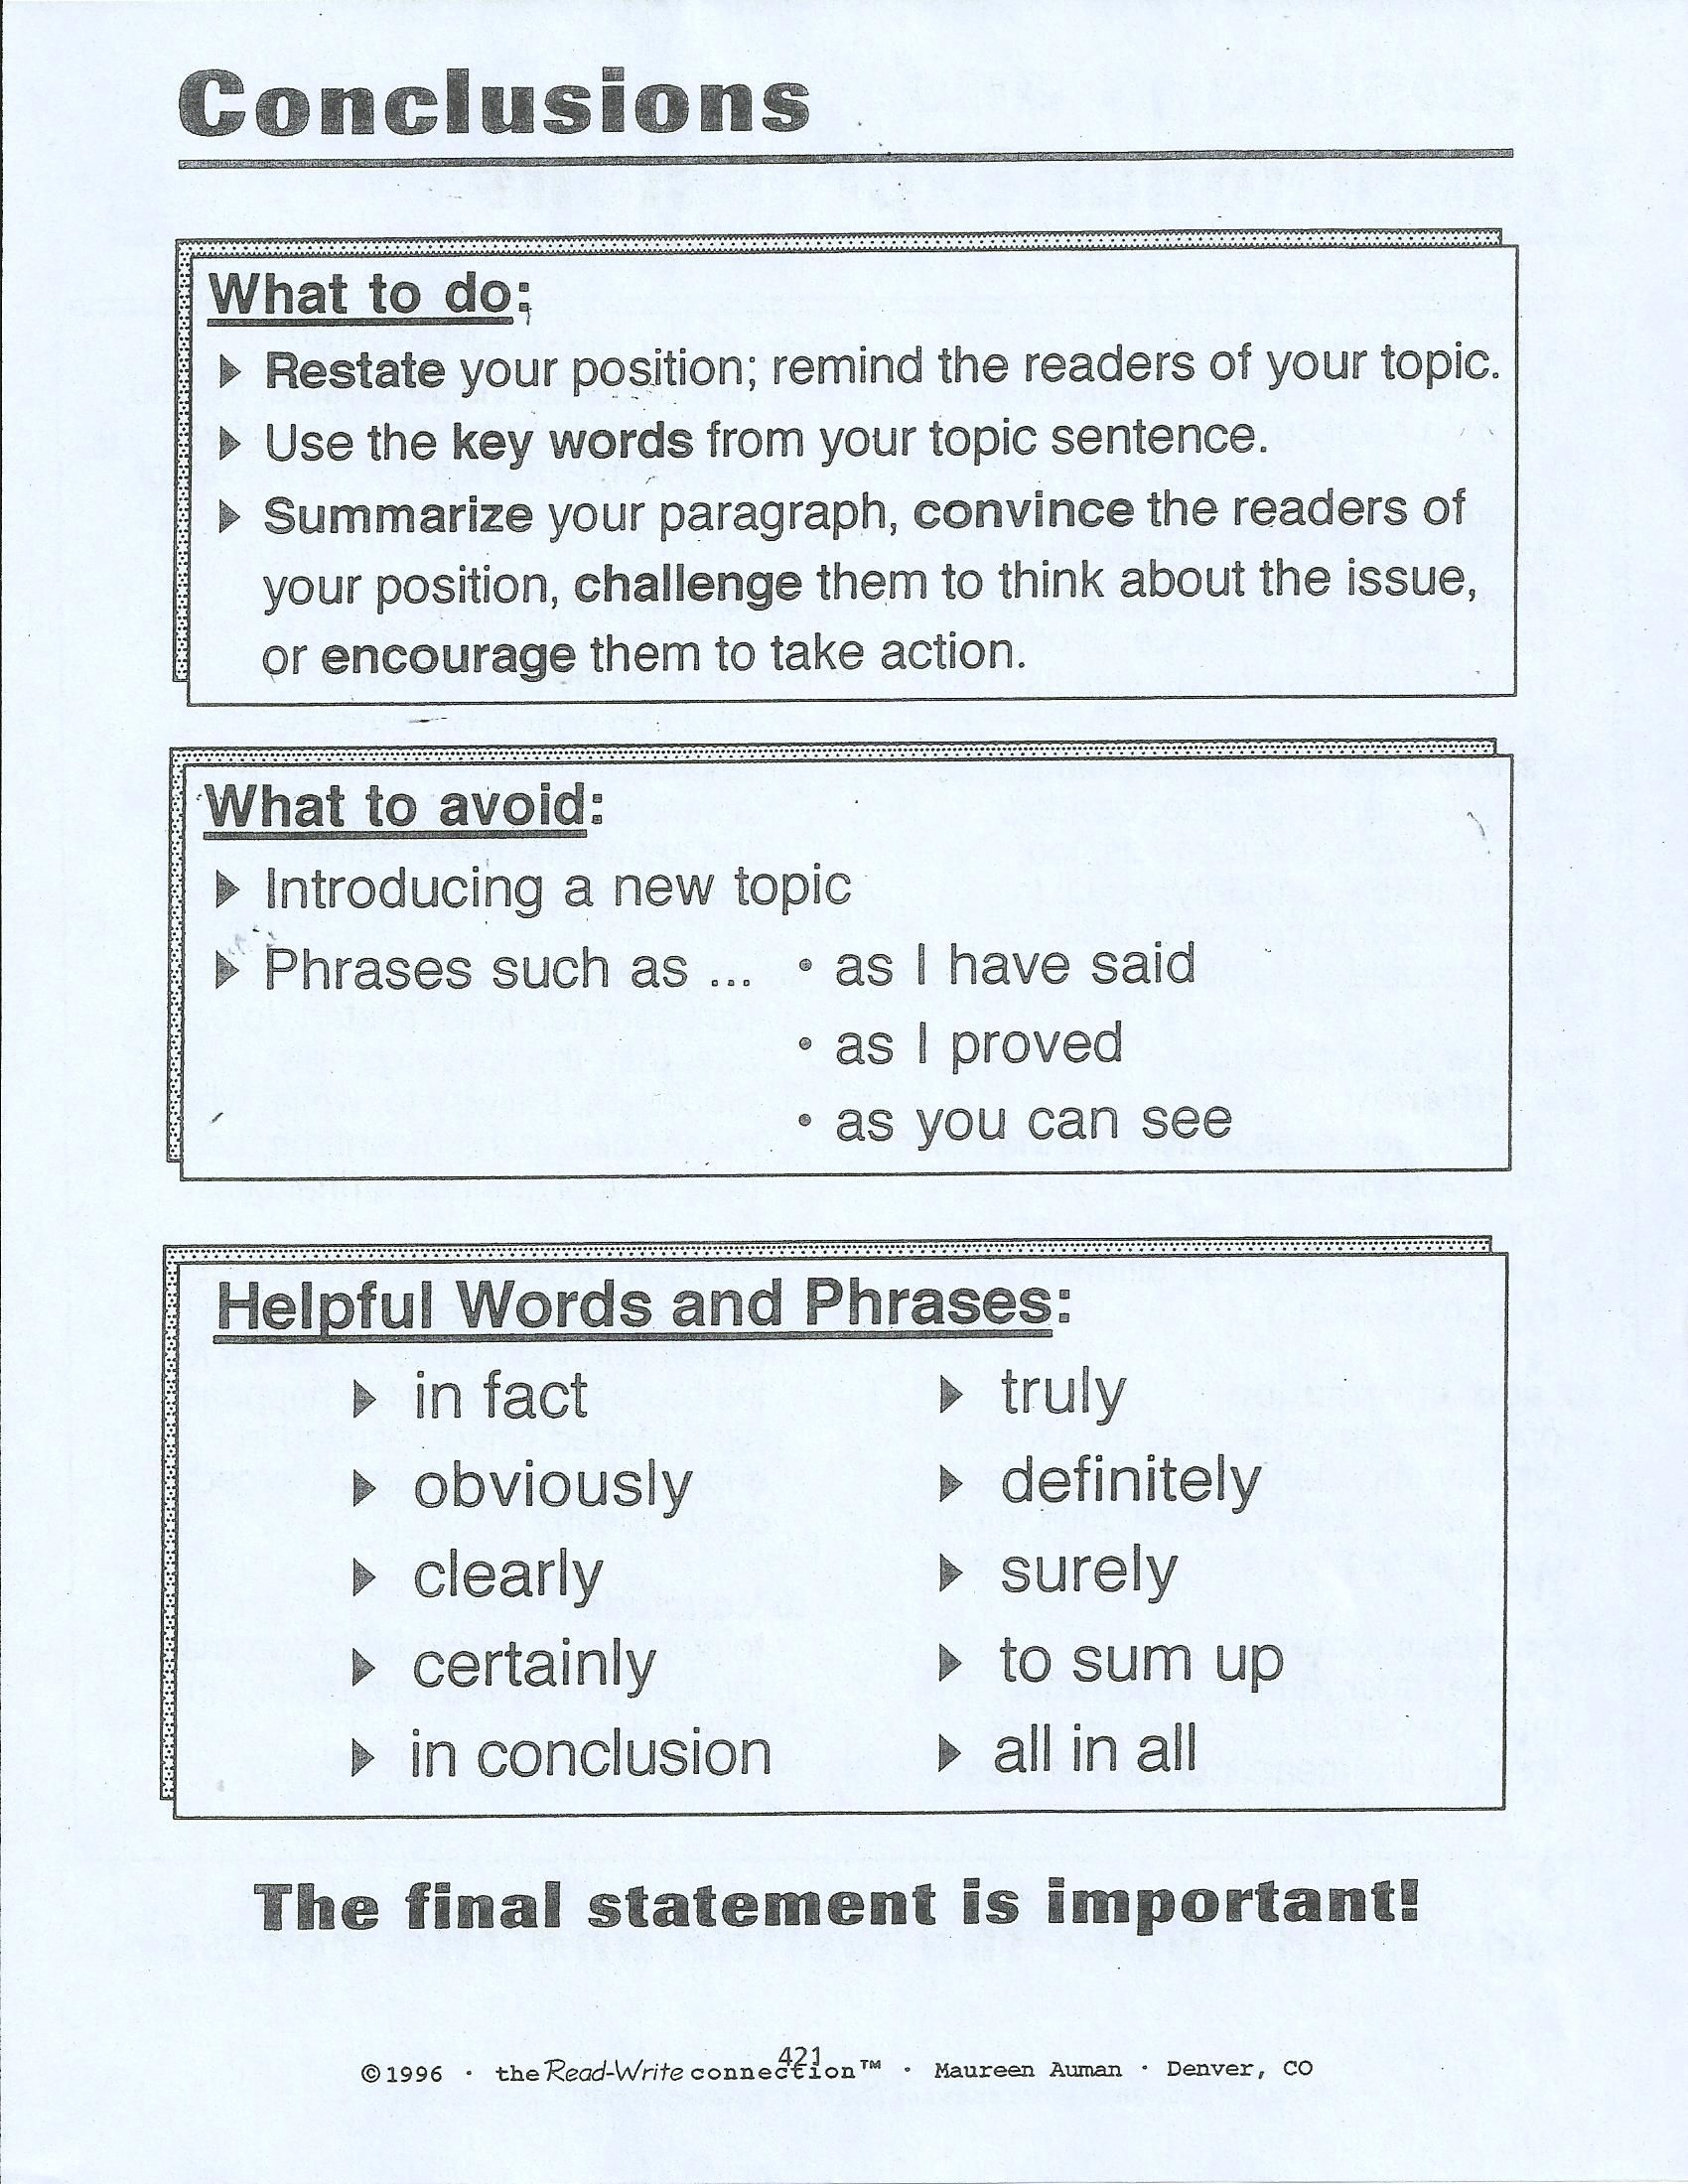 How to be a good friend process essay image 4